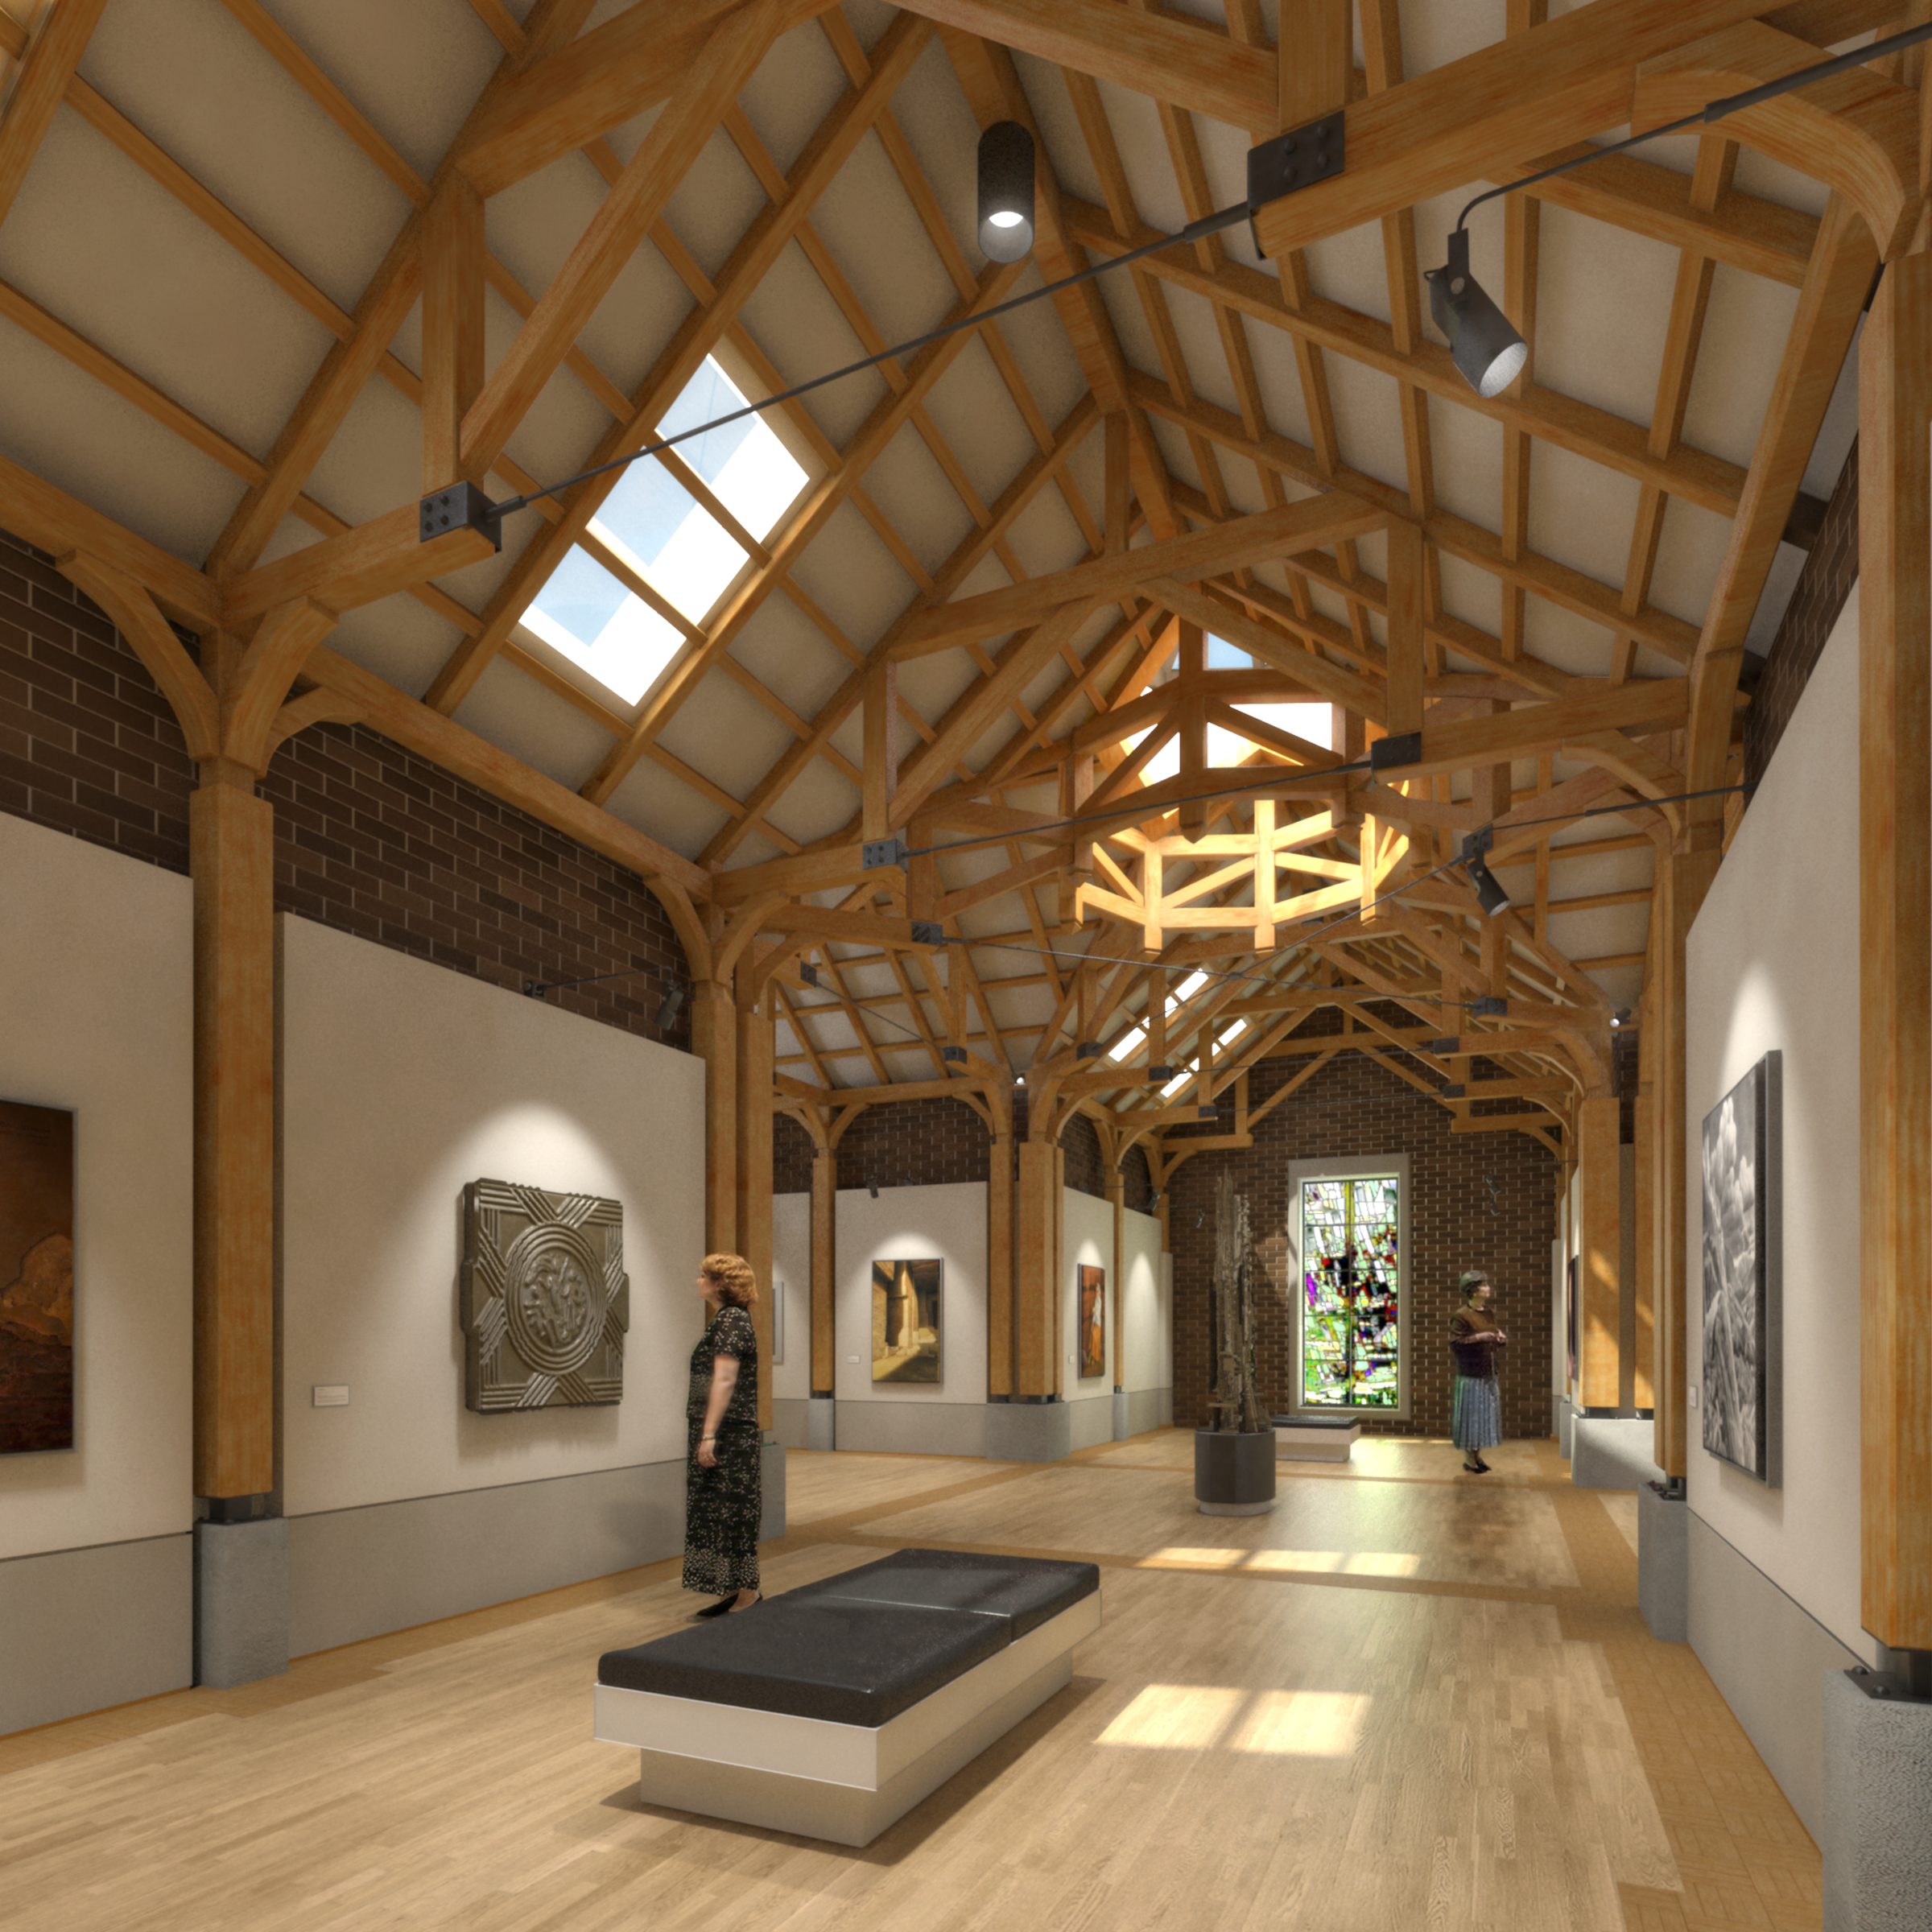 I367550_GERMAN-MUSEUM_INTERIOR_TIMF-12_0004-01_Flattened-NoLogo_2400px.png